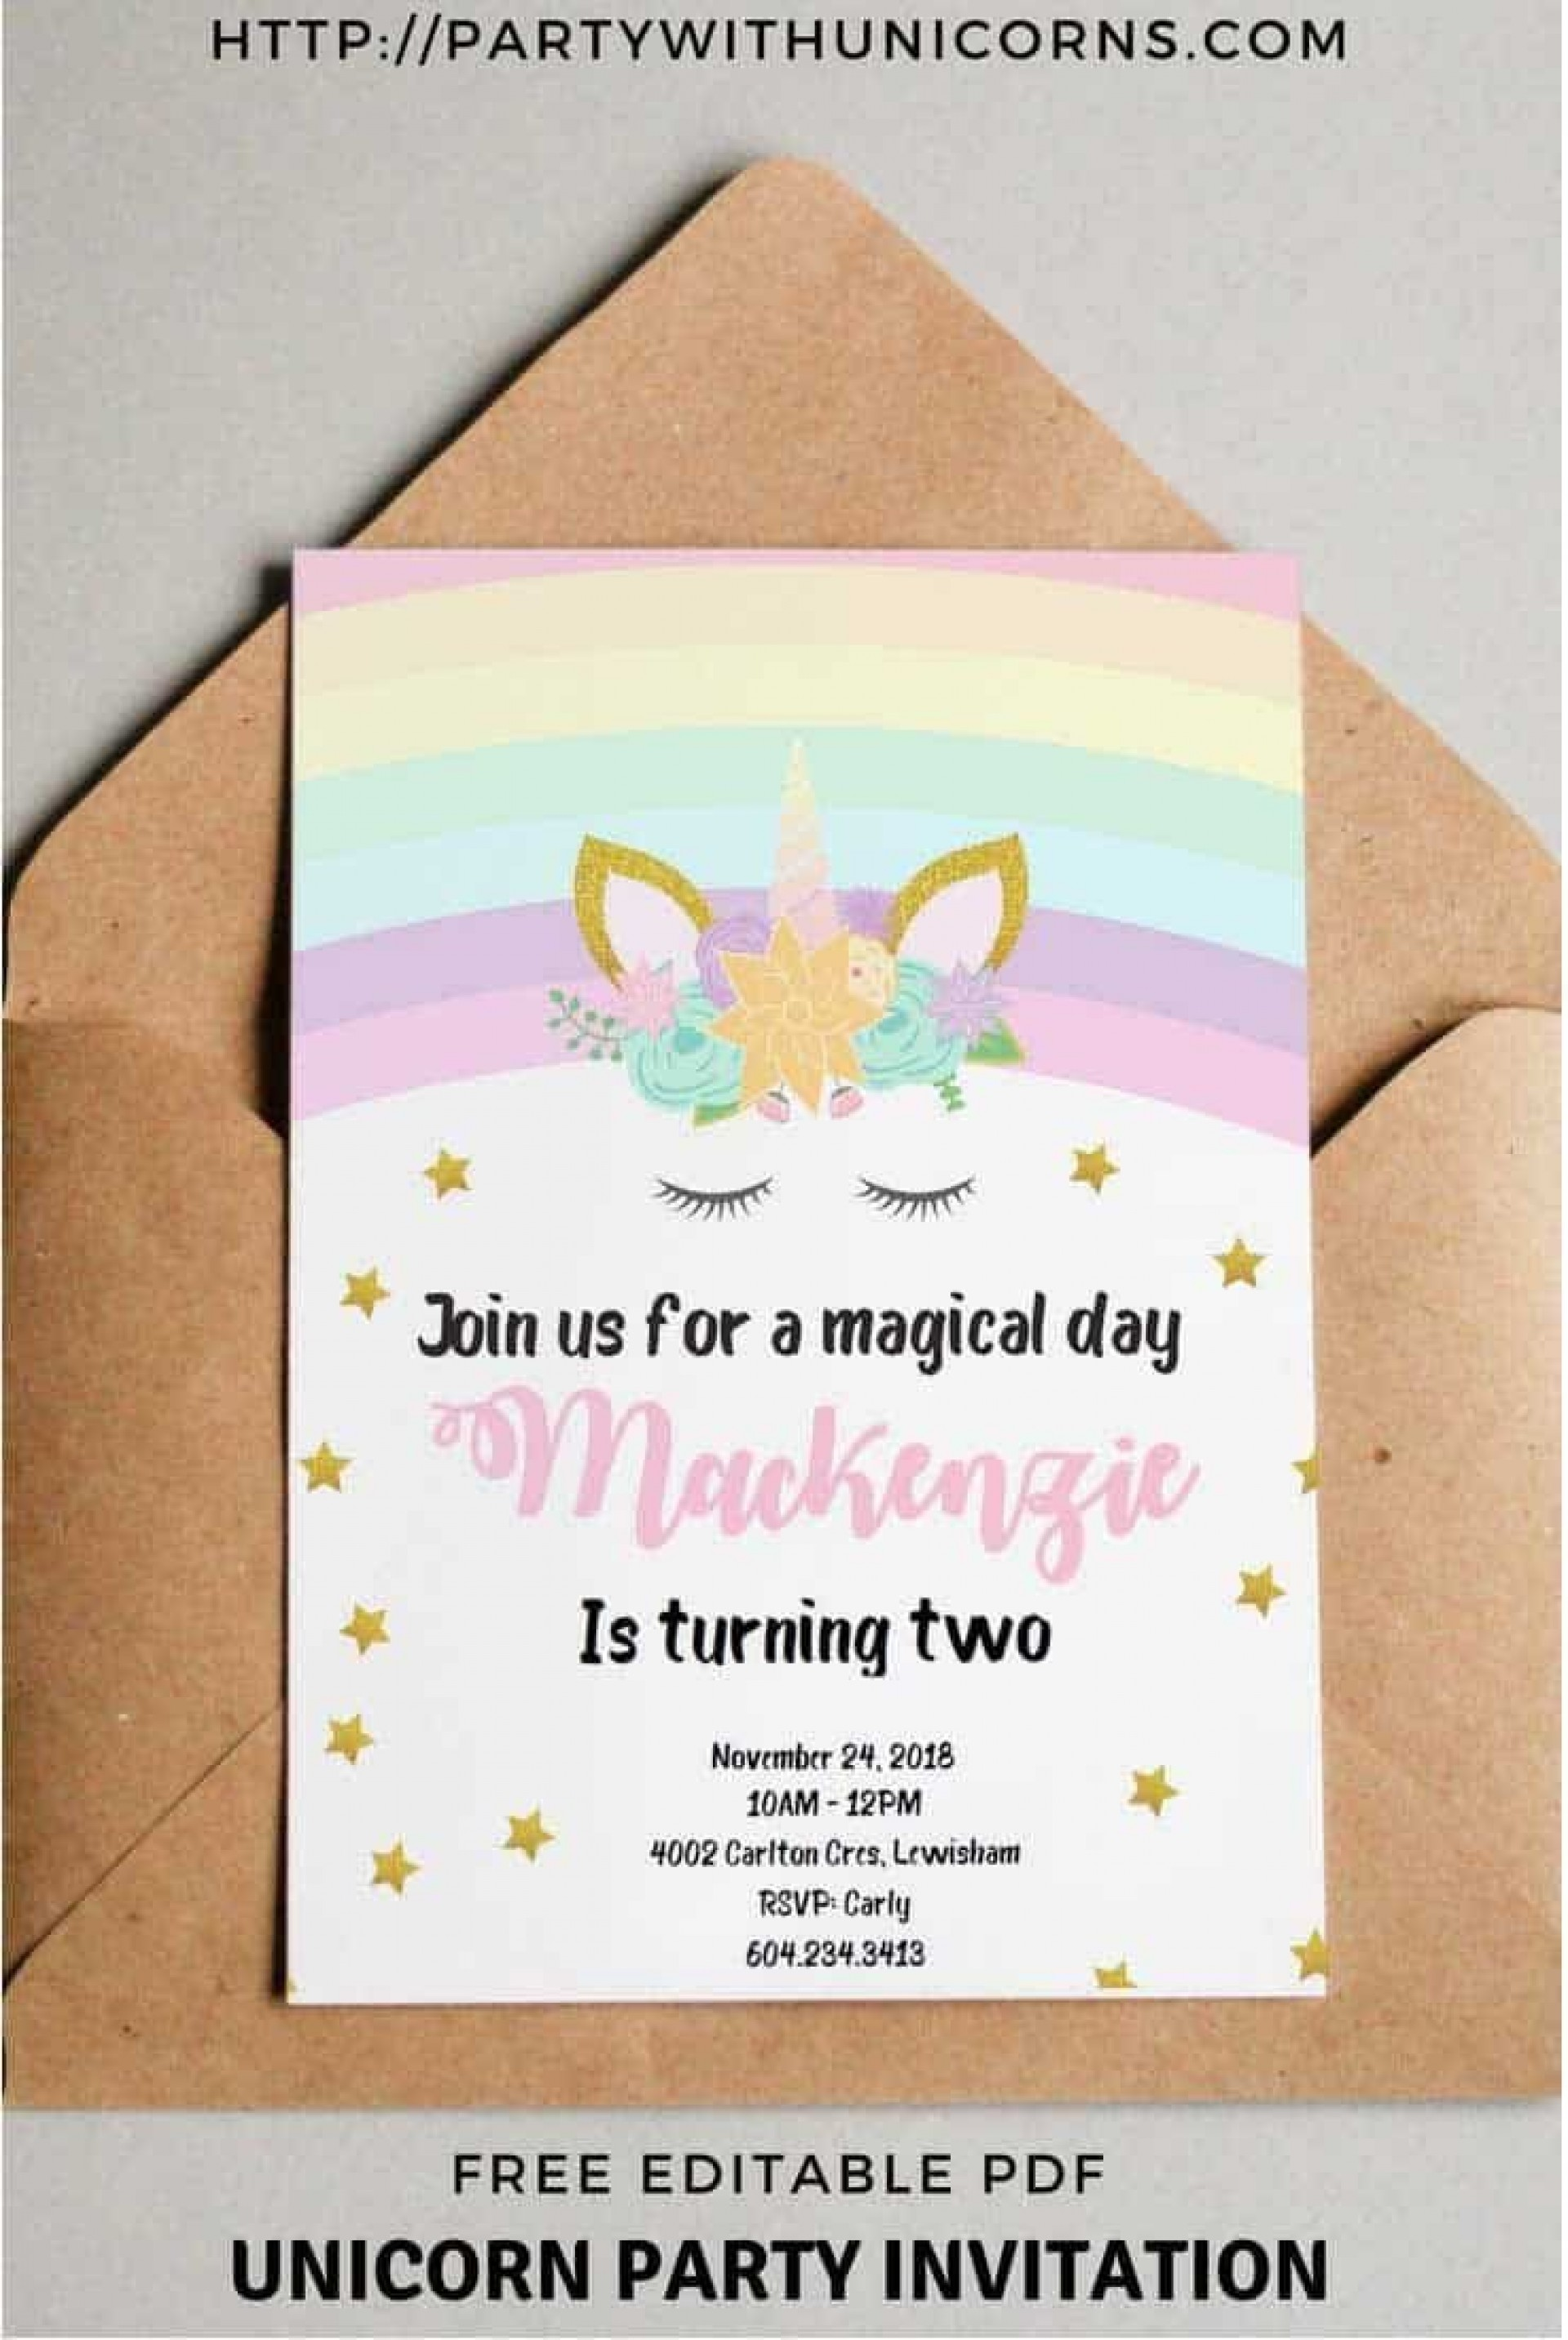 009 Impressive Free Online Birthday Invitation Card Maker With Name And Photo Concept 1920